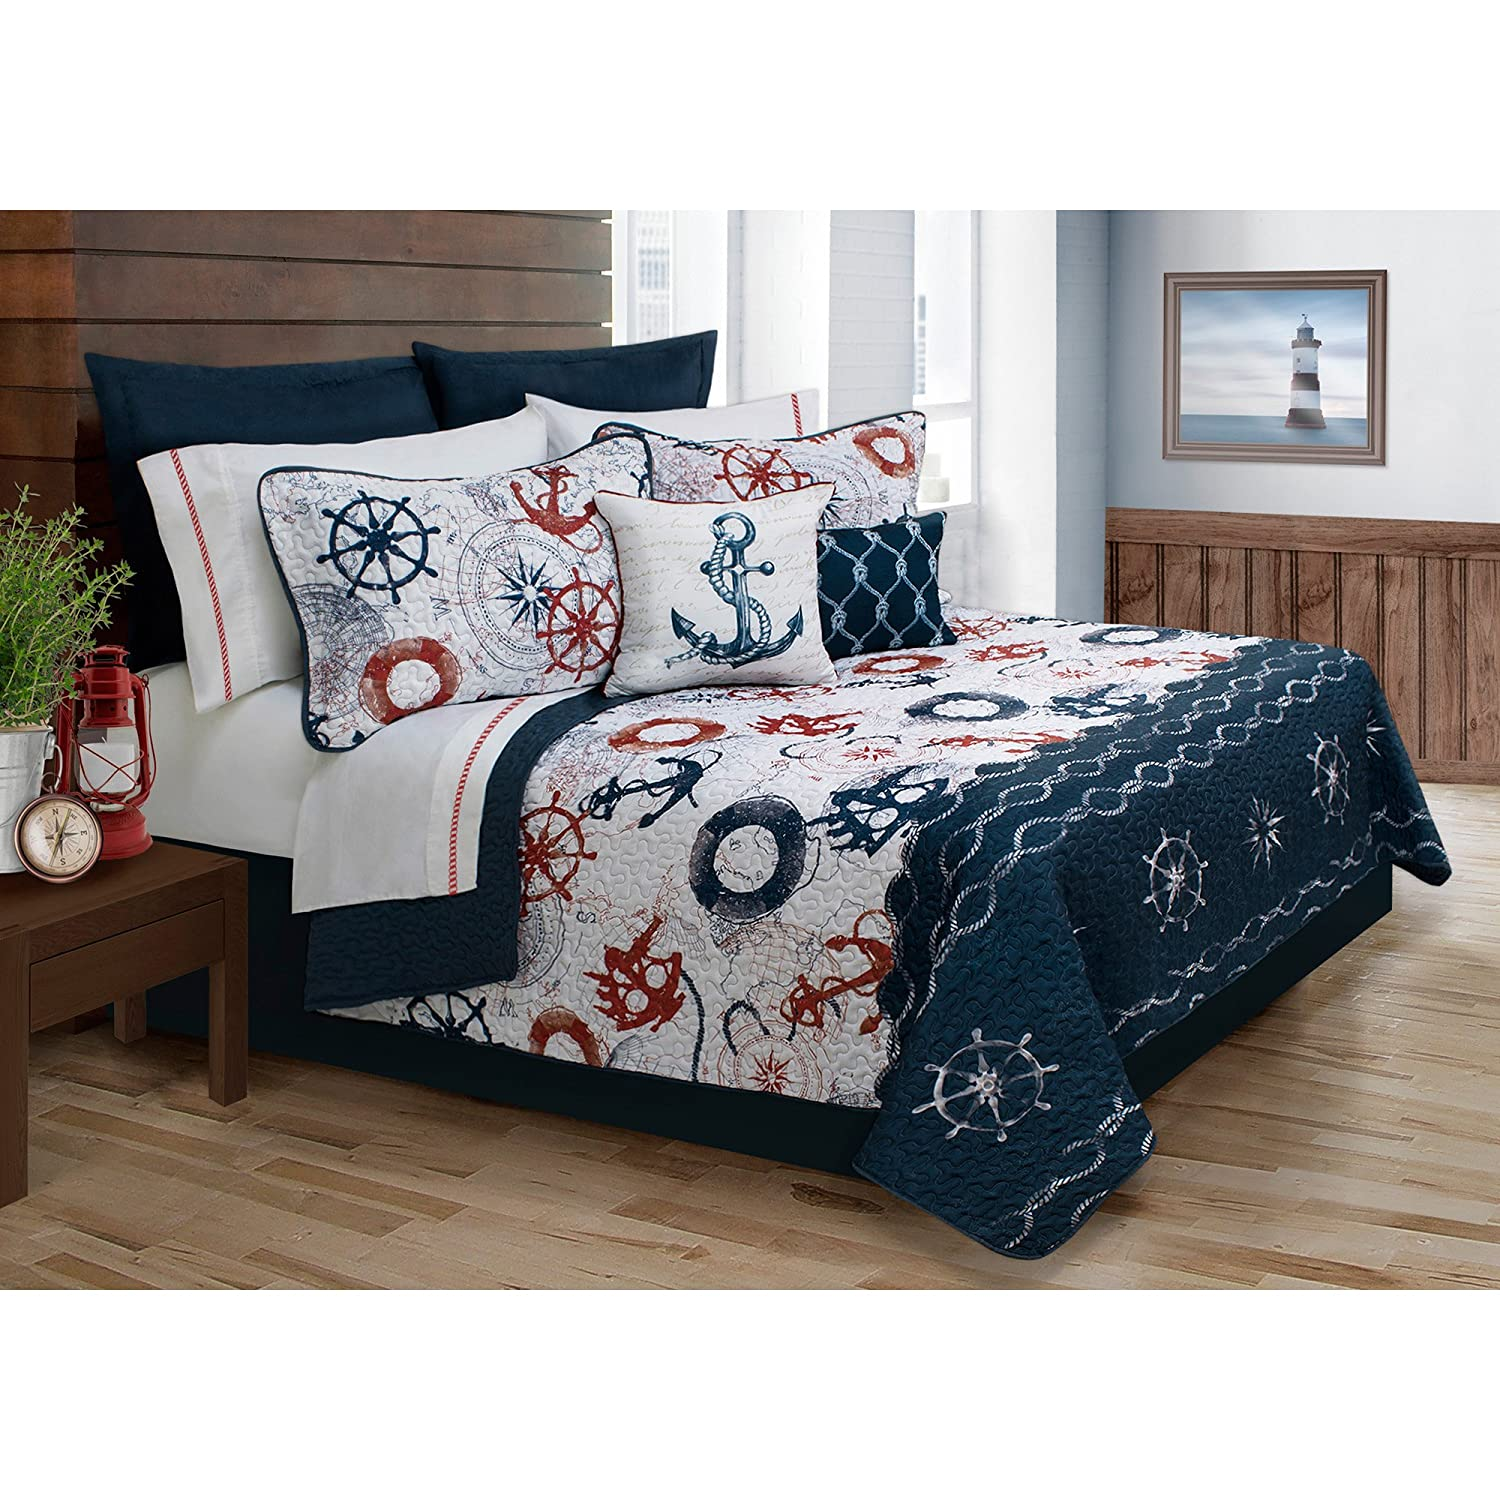 Safdie & Co. Collection Ocen Club 5 Piece Quilt and Sham Set, King 60118.5K.13